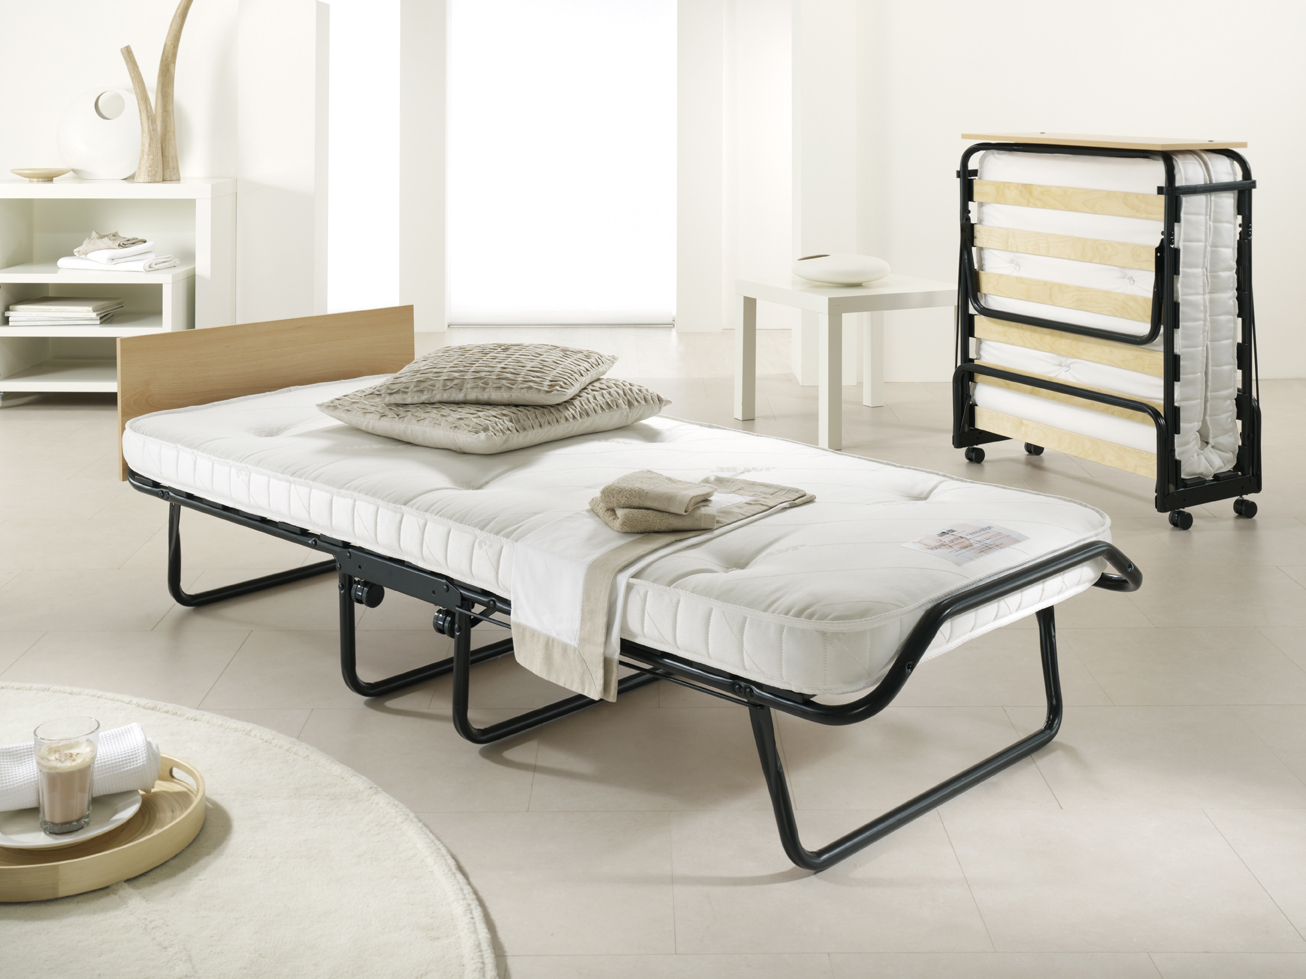 Folding Double Guest Bed With Mattress Folding Beds From Slumberslumber Page 1 Of 2